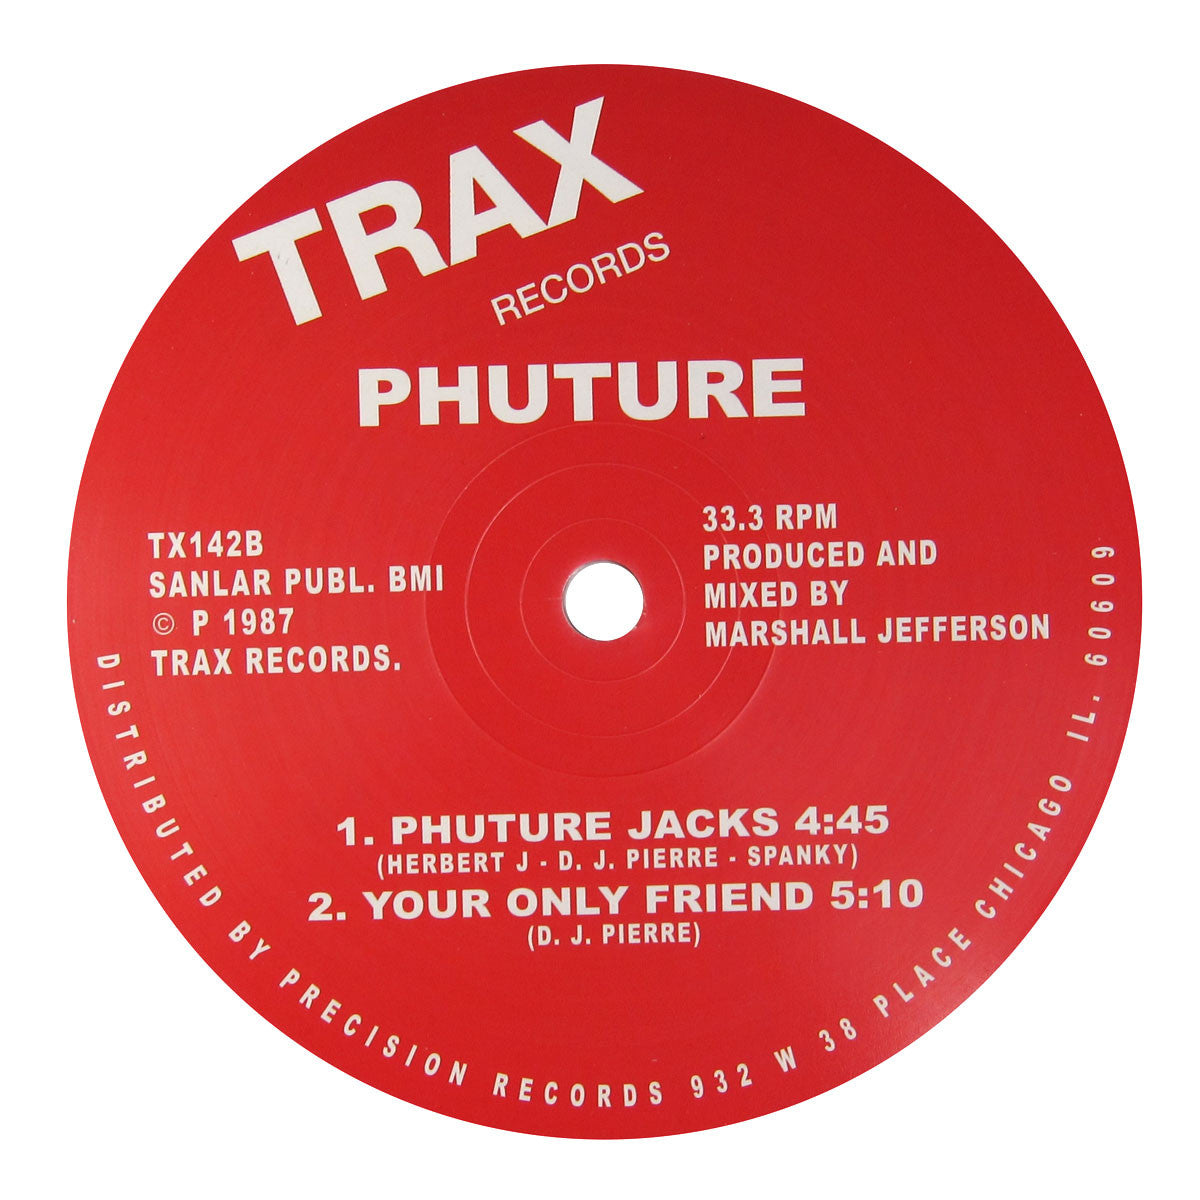 Phuture: Acid Tracks Vinyl 12""